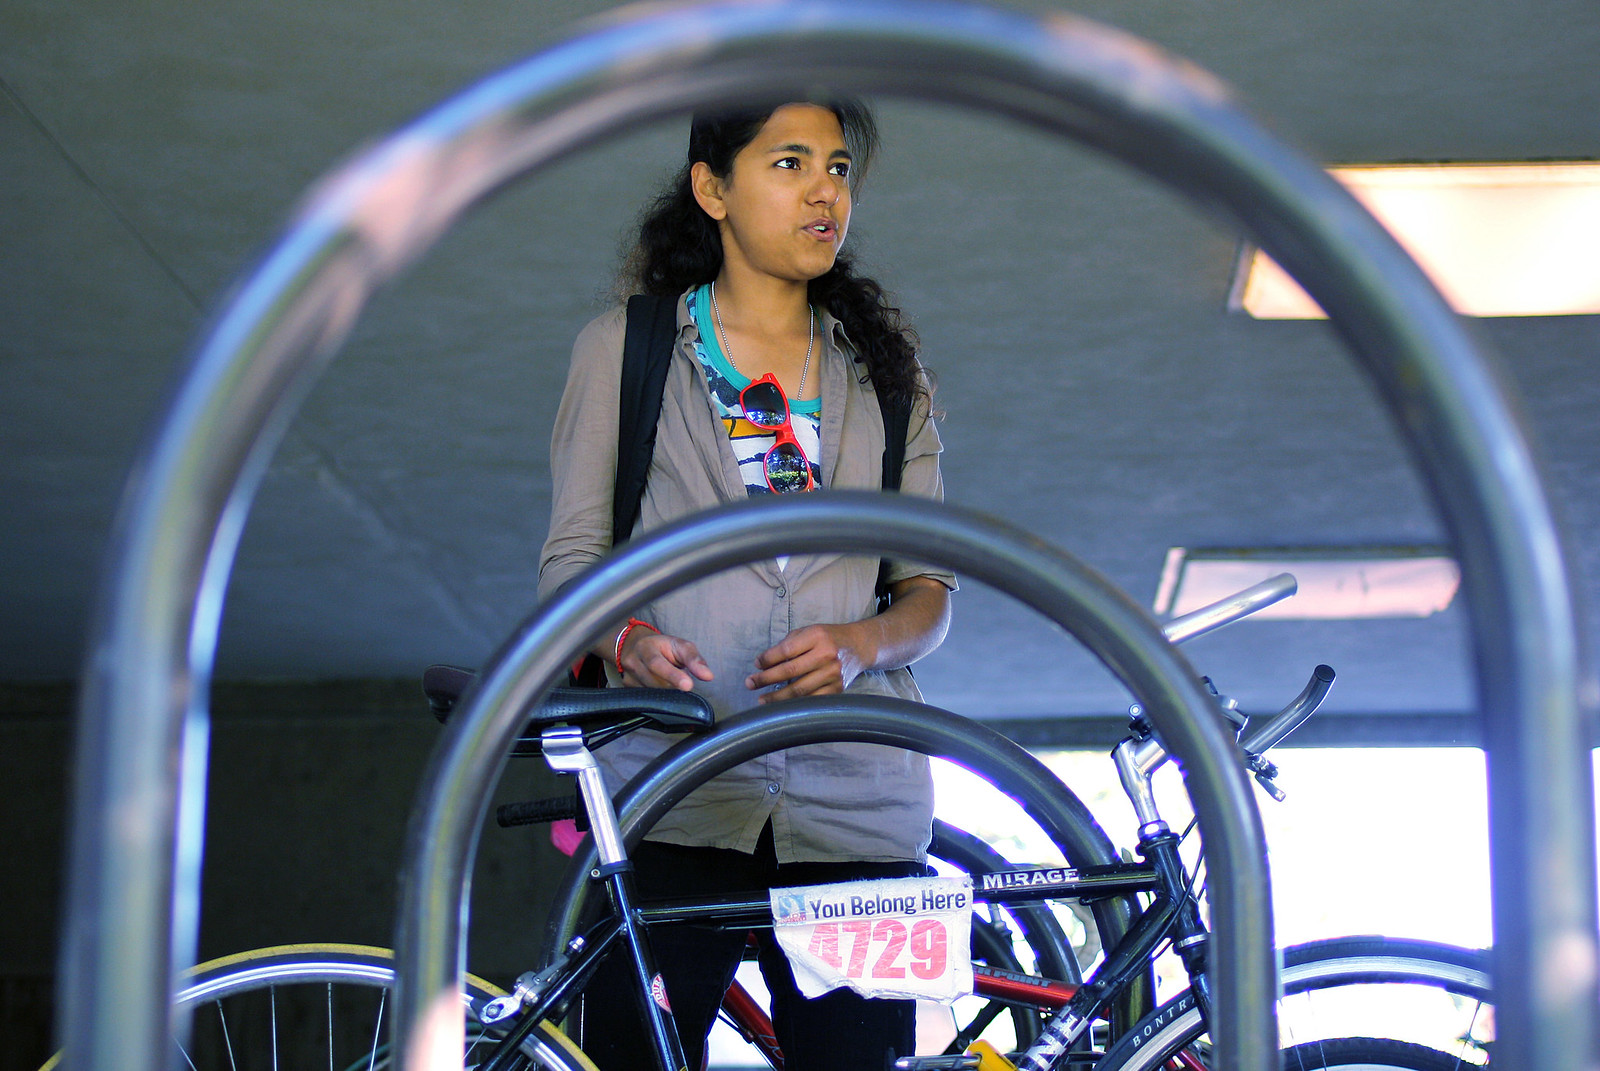 Zainab Abbas locks up her bike near Thornton Hall Oct. 7, 2013. Photo by Tony Santos / Xpress